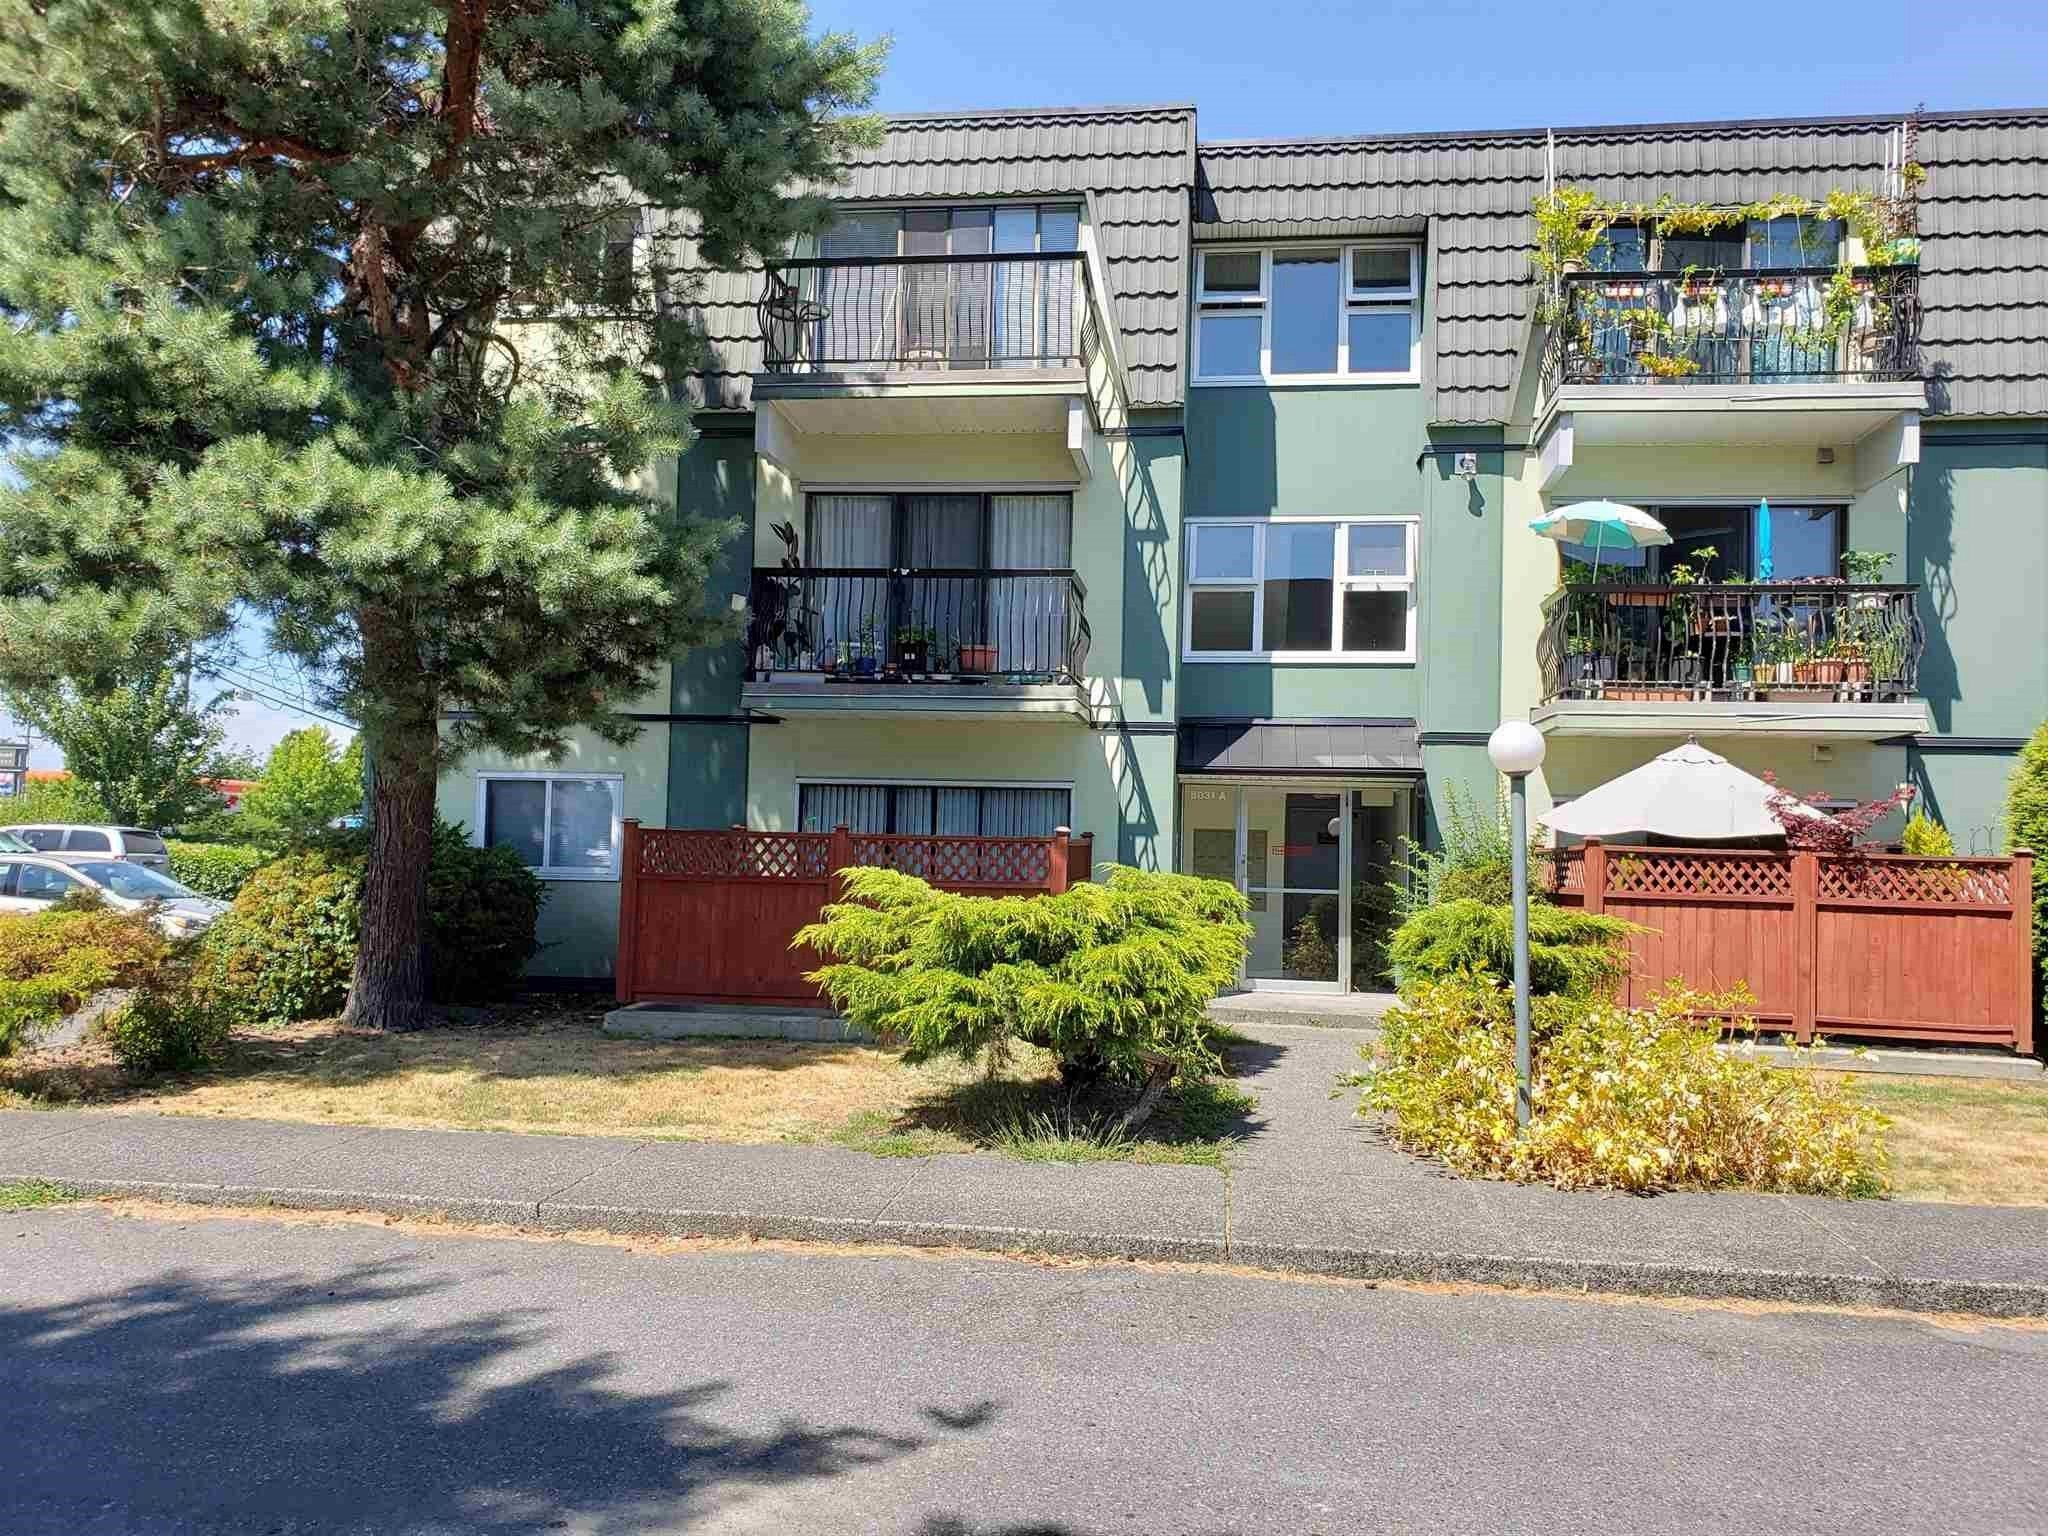 """Main Photo: 313 8031 RYAN Road in Richmond: South Arm Condo for sale in """"Mayfair Court"""" : MLS®# R2601114"""